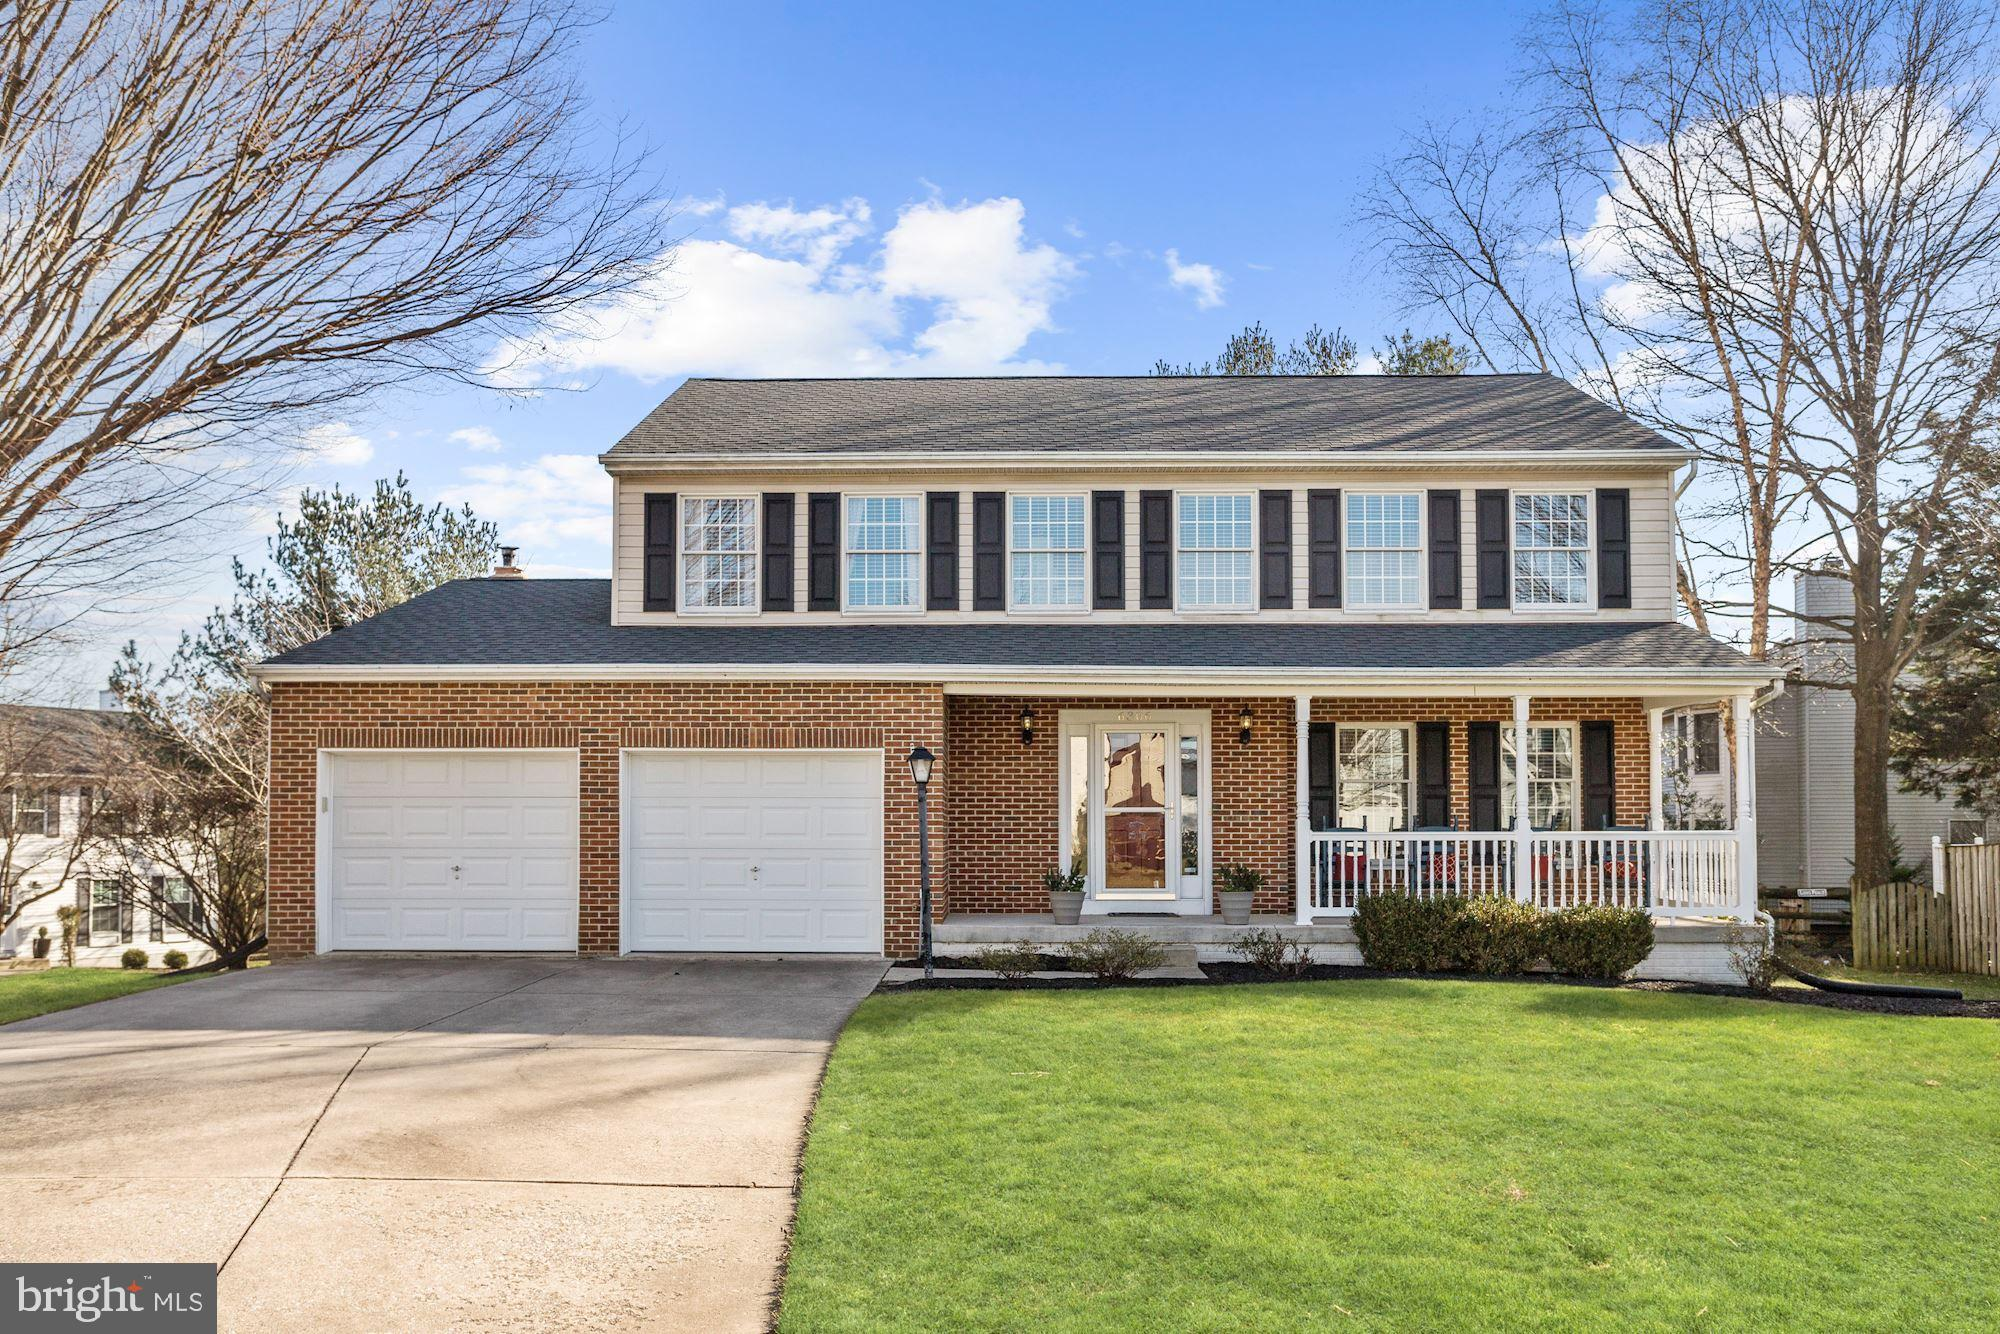 6306 ROAN STALLION LANE, COLUMBIA, MD 21045